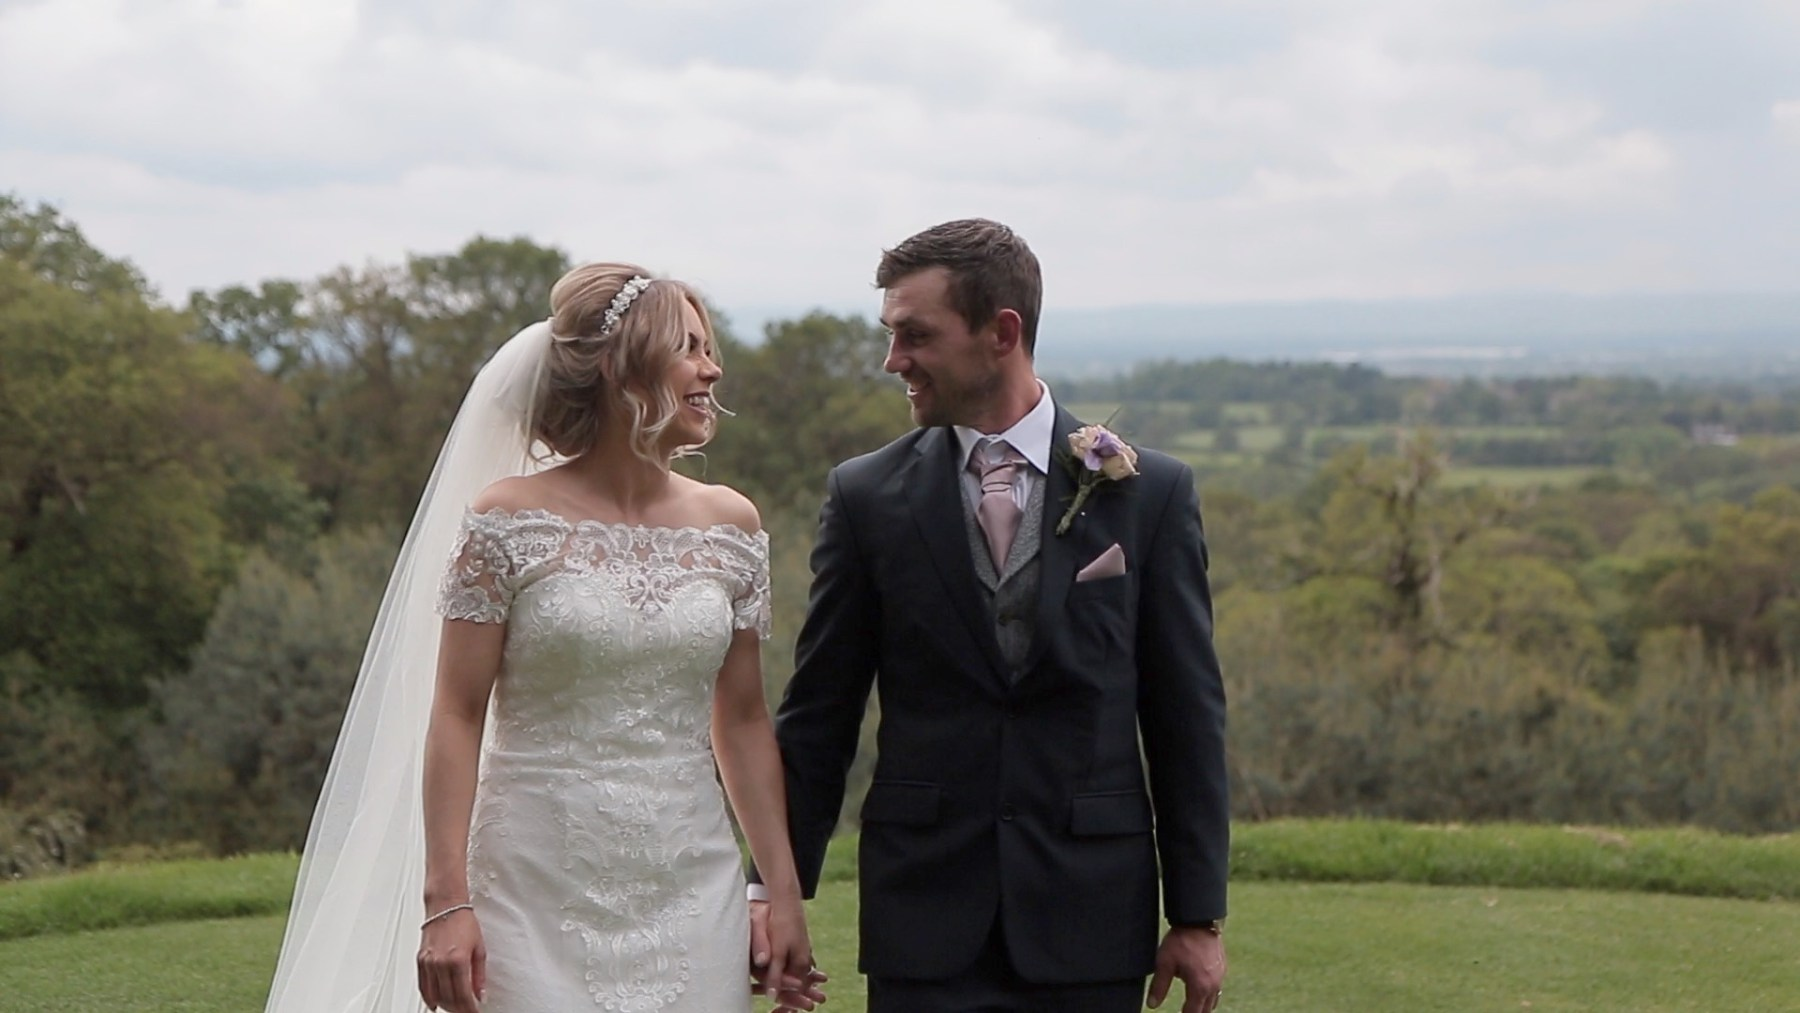 Wedding Video at Carden Park in Cheshire